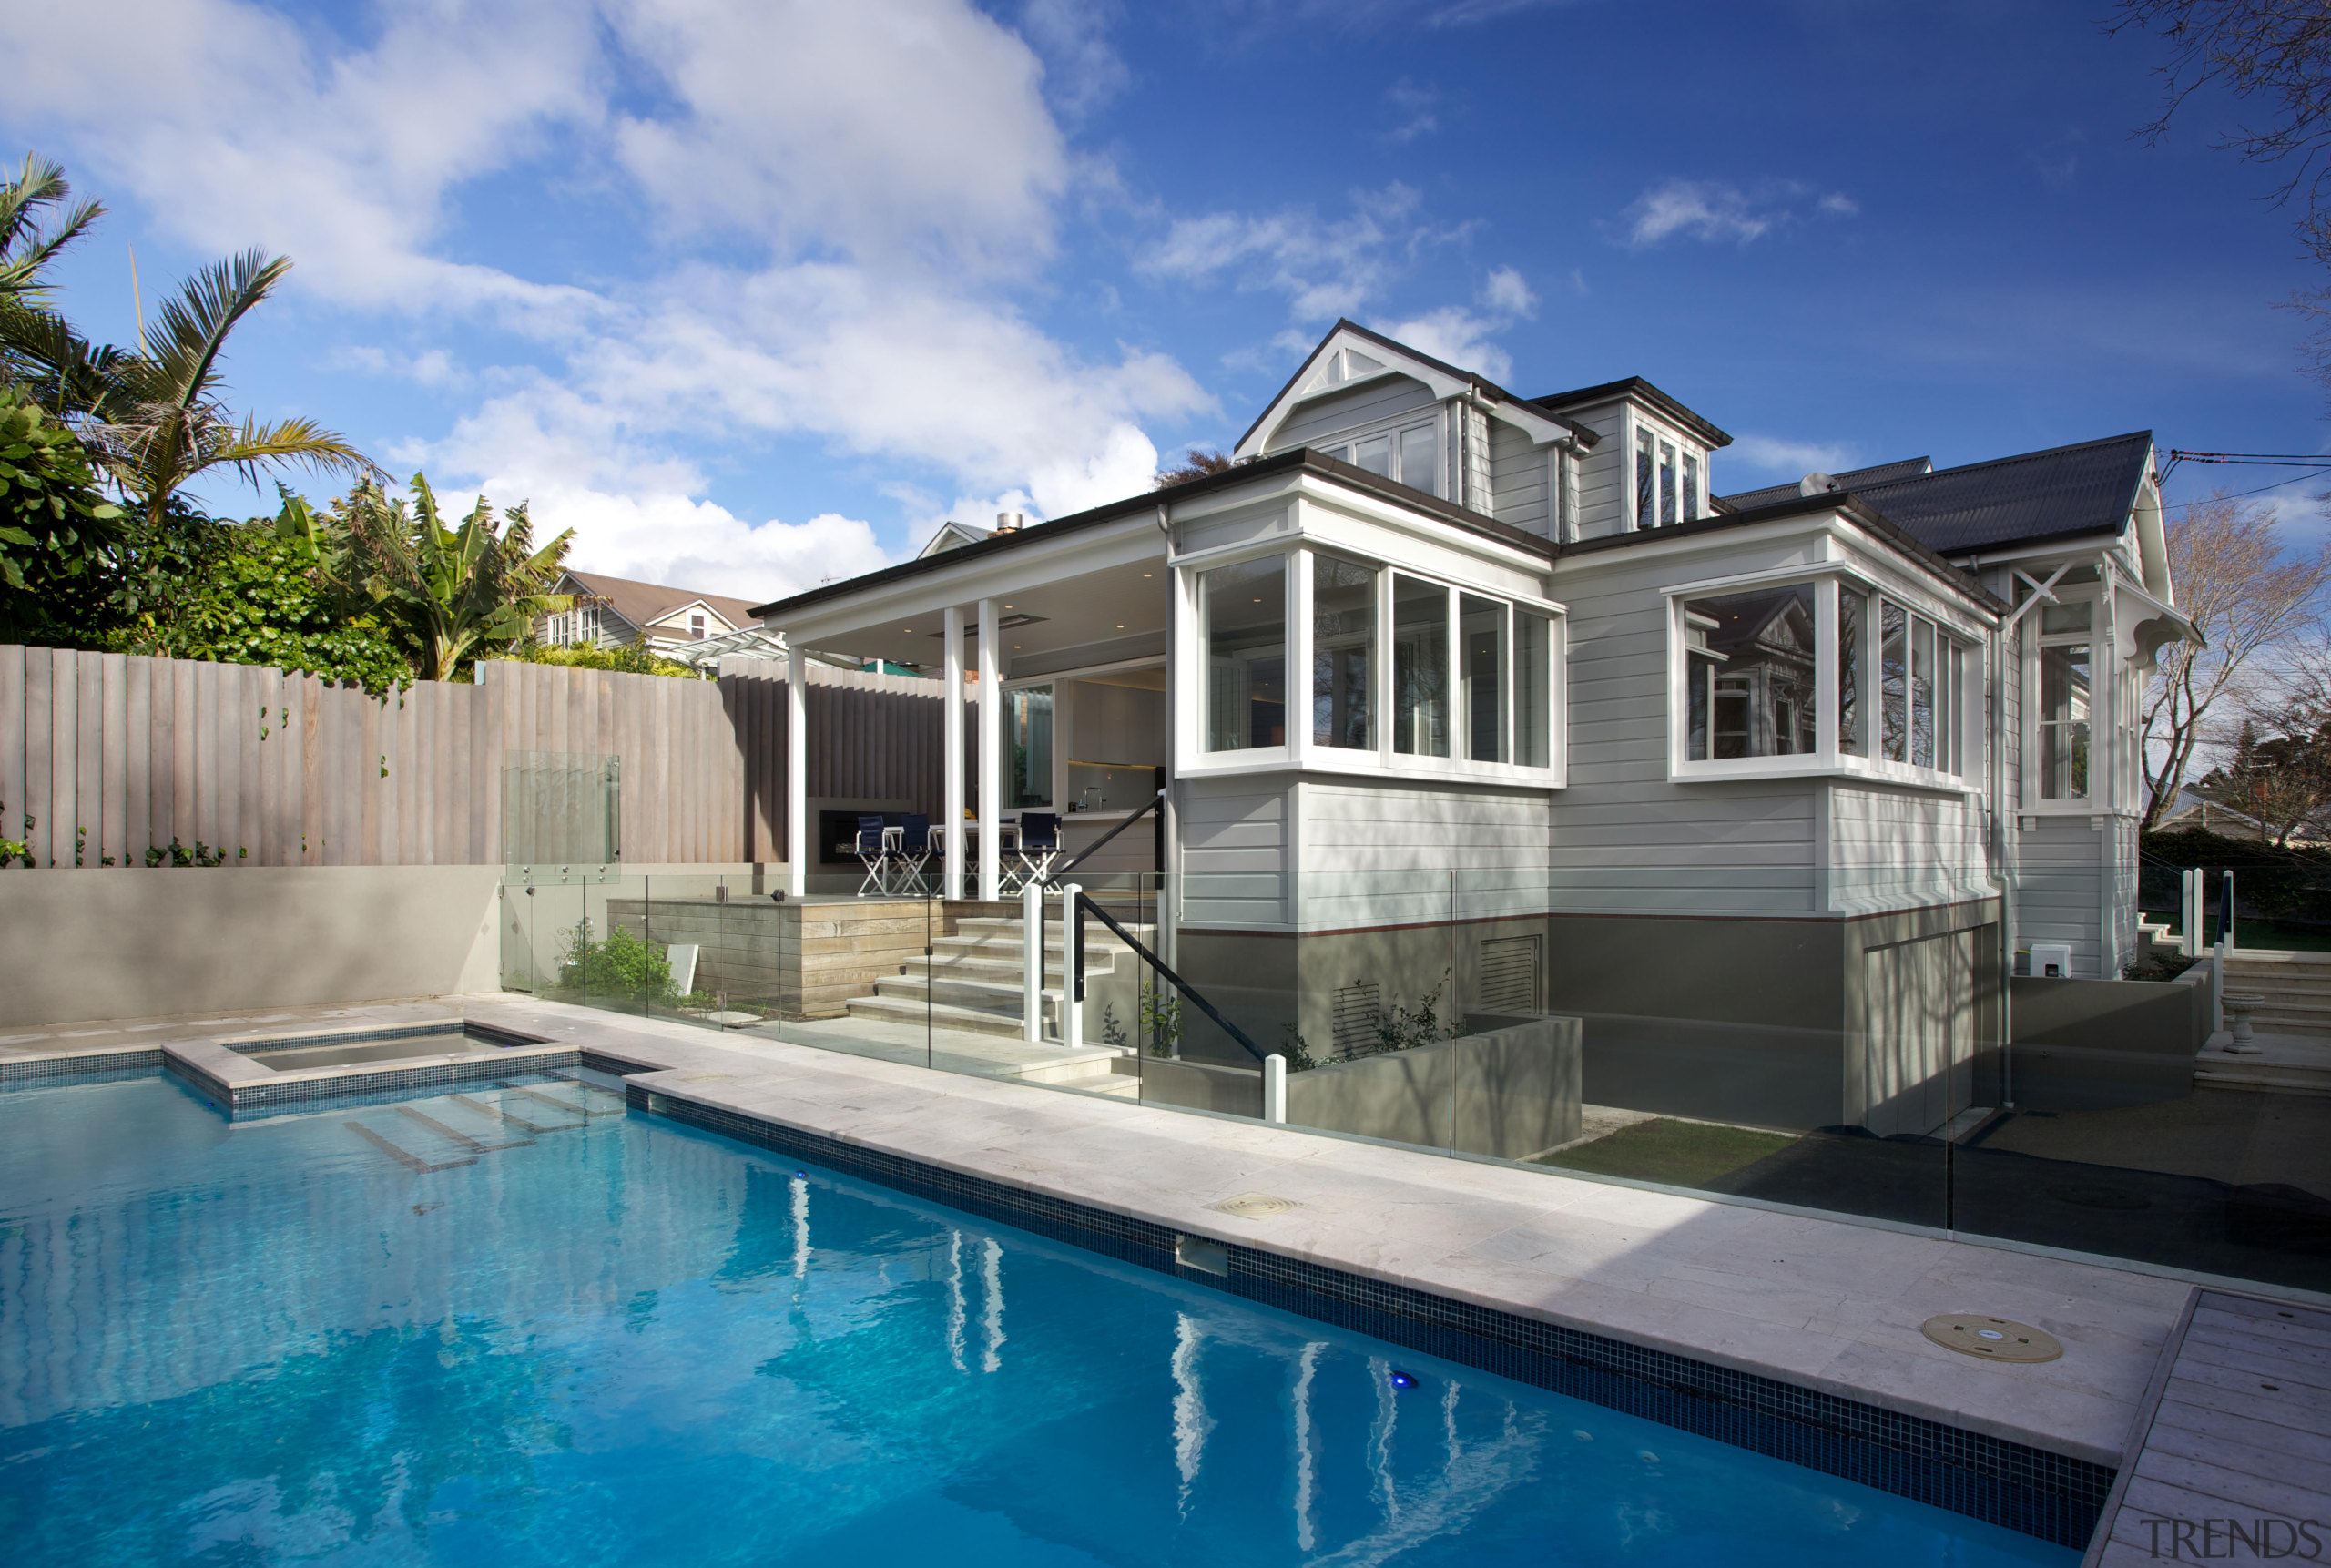 A major renovation by Scarlet Architects has transformed architecture, backyard, cottage, estate, facade, home, house, property, real estate, residential area, swimming pool, villa, teal, gray